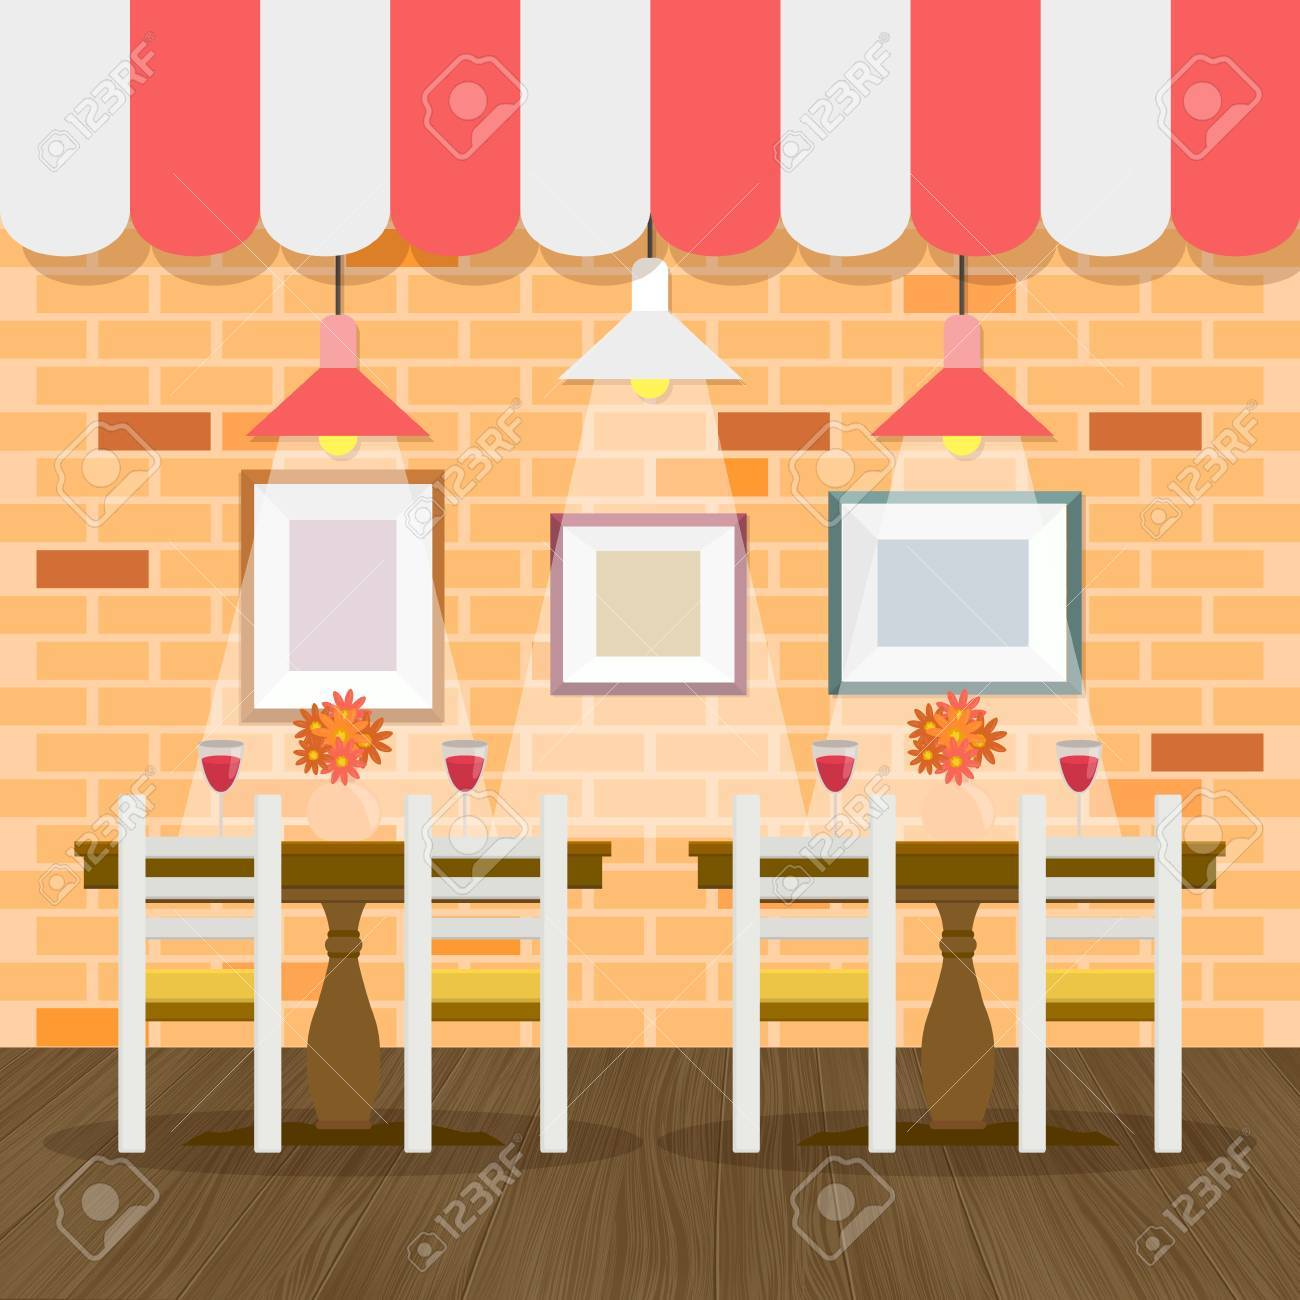 Restaurant Interior With Bricks Wall Vector For Your Ideas Royalty ...